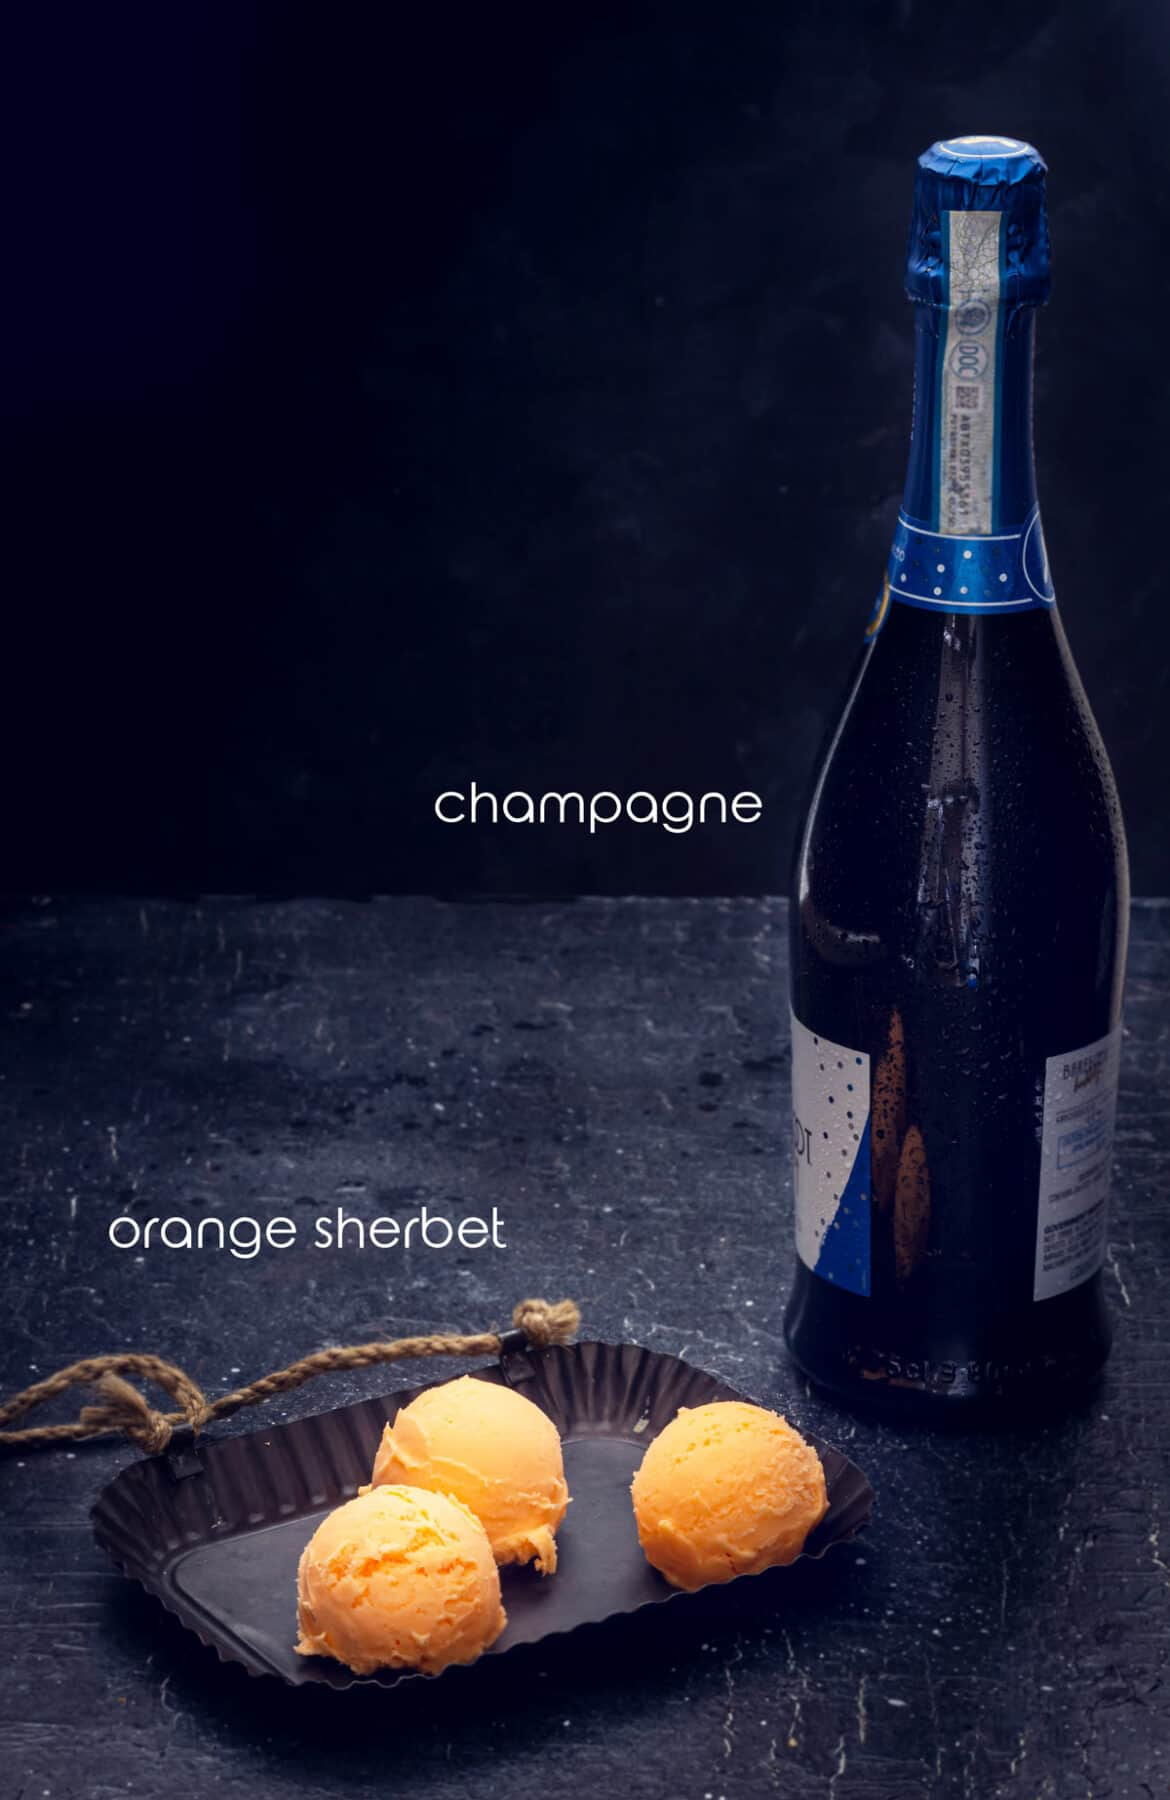 Ingredients for mimosa cocktail including champagne and orange sherbet.